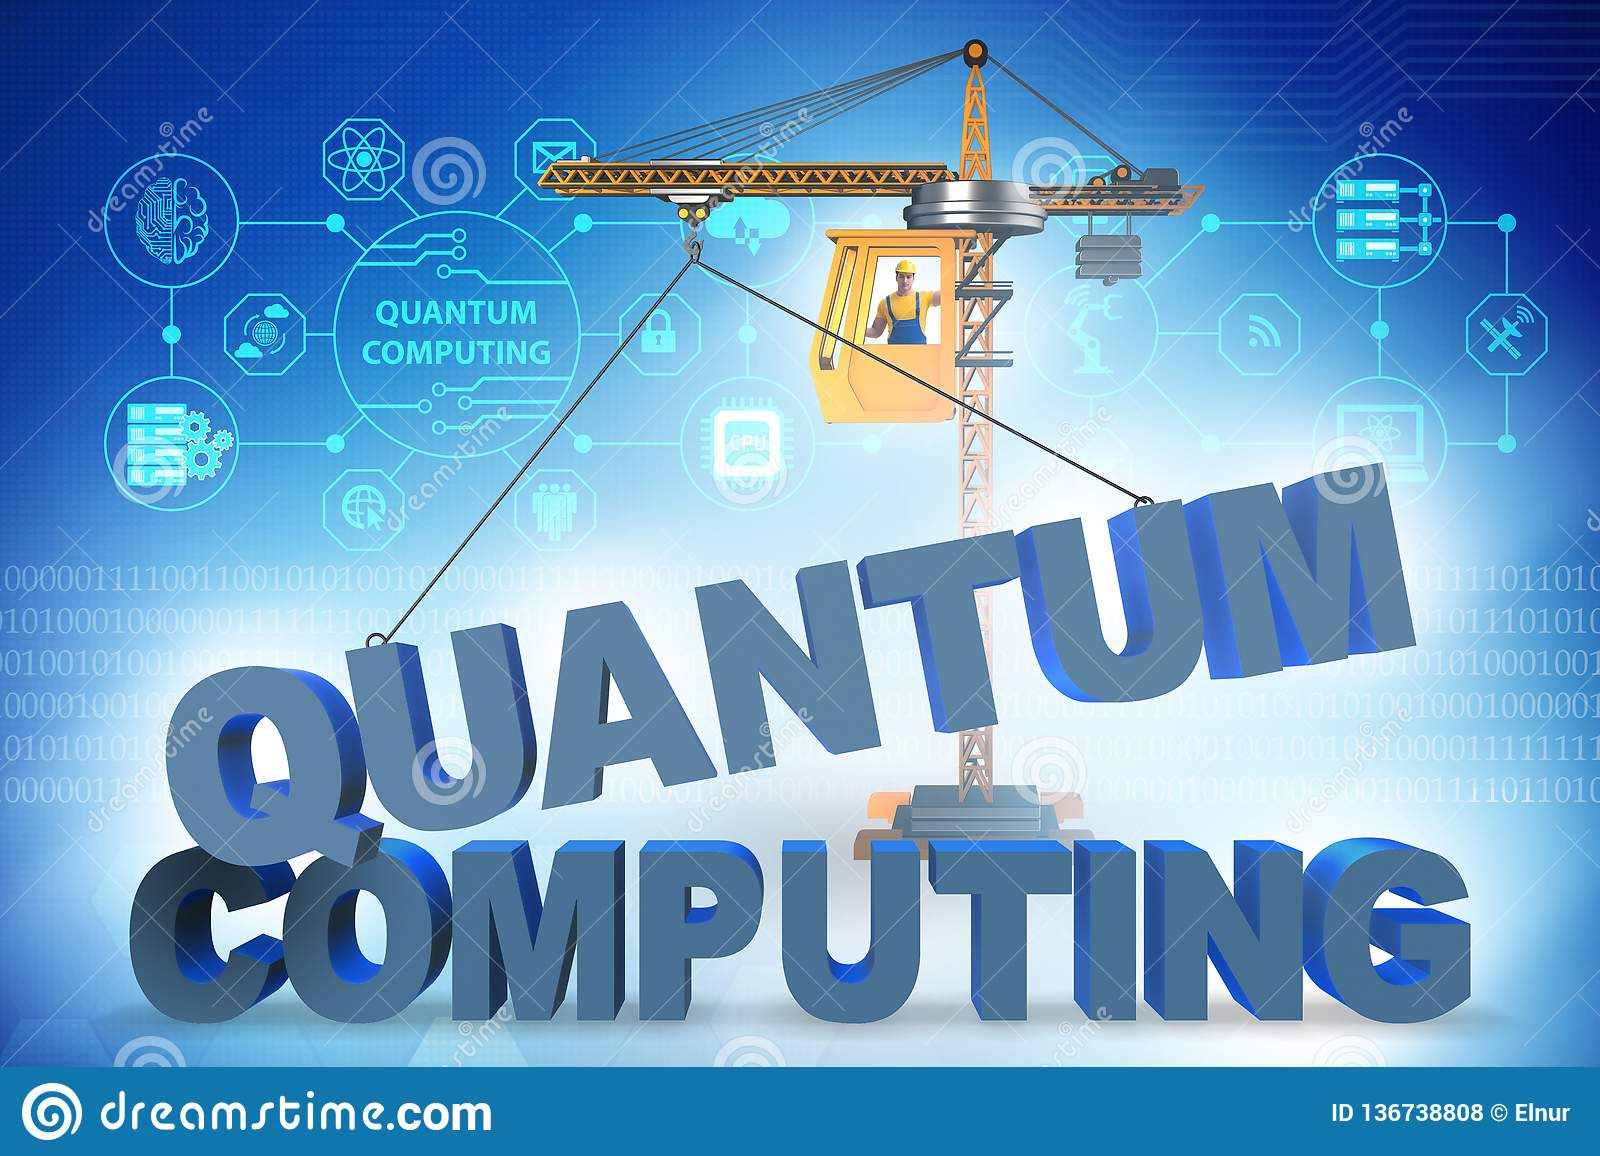 The Quantum Computing Concept - 3d Rendering Stock Photo